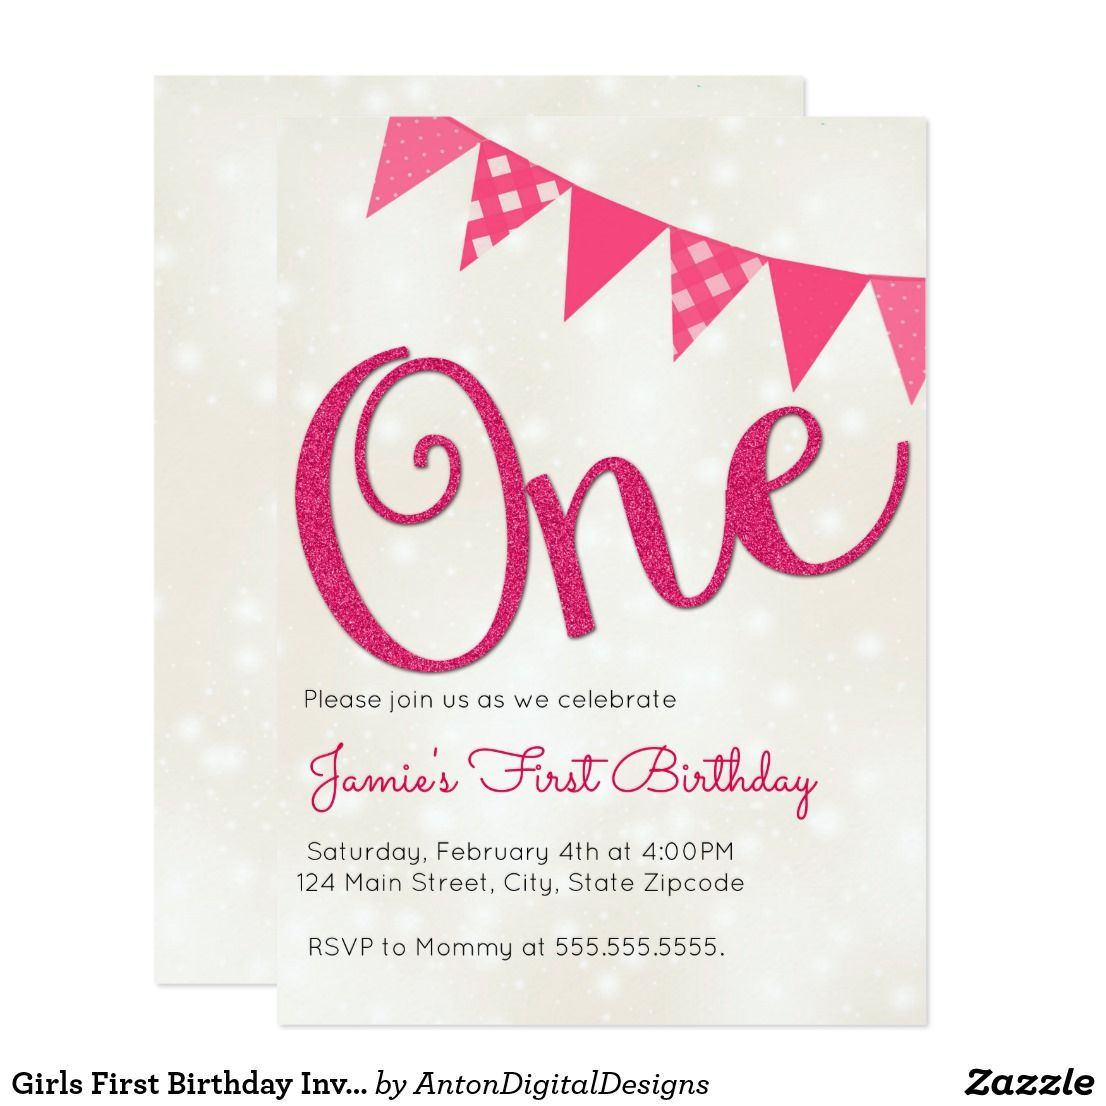 Girls First Birthday Invitation | Party invitations and Birthdays